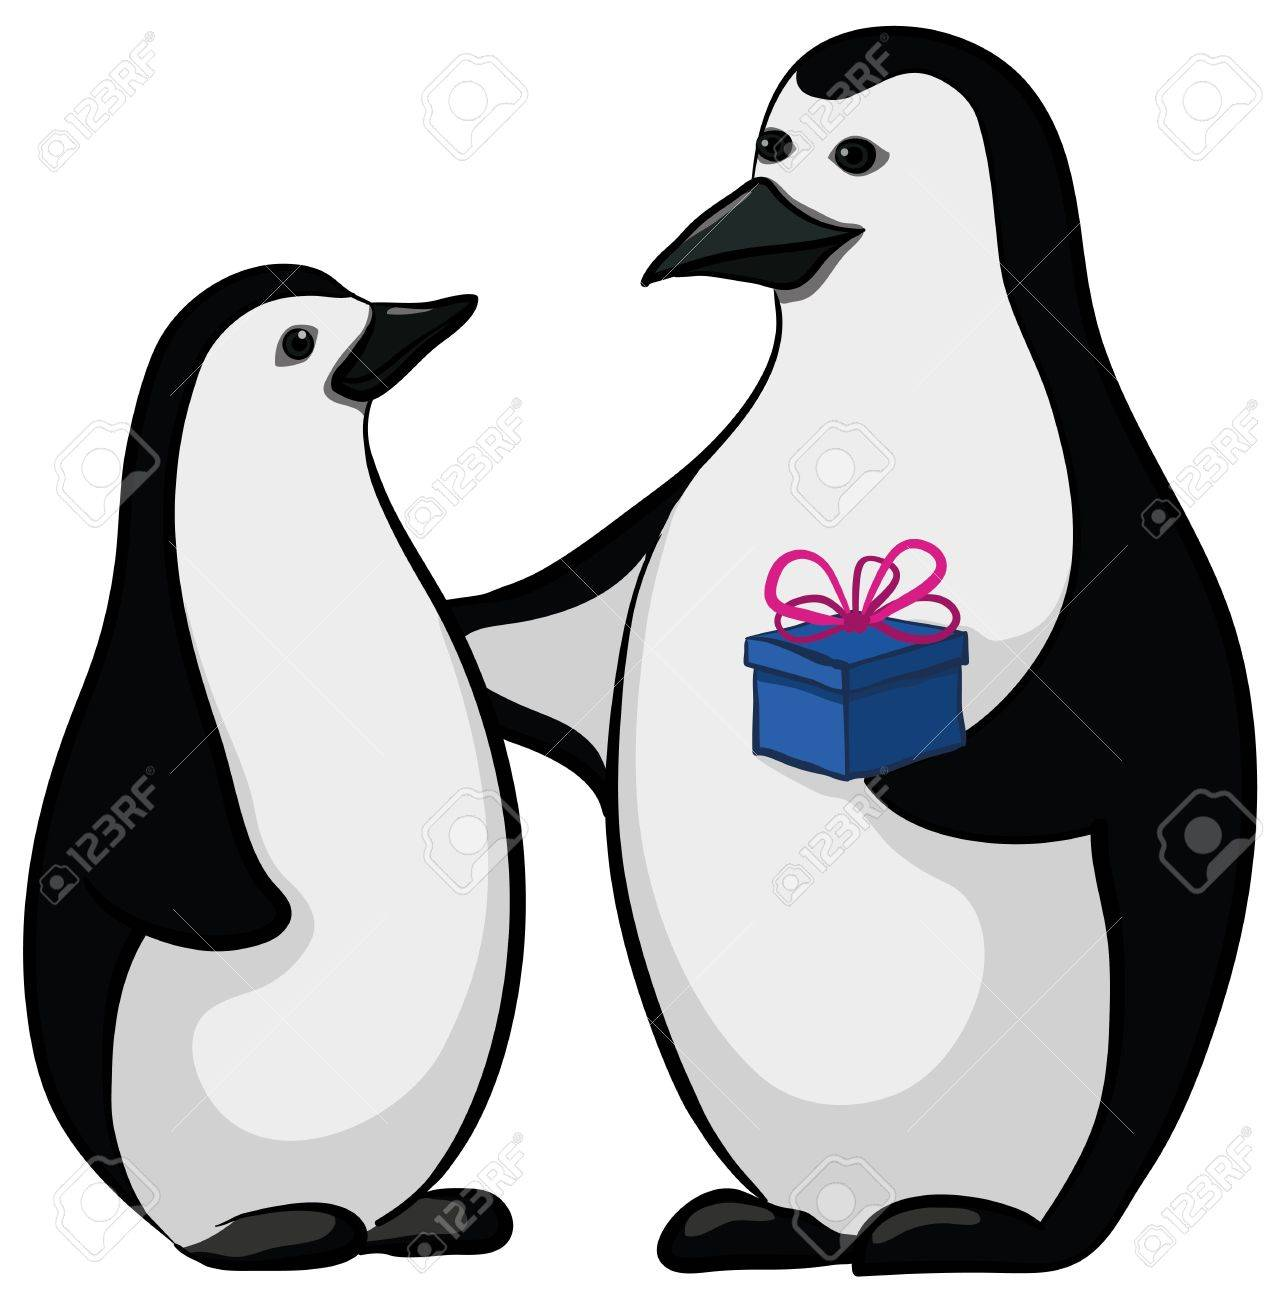 Antarctic black and white emperor penguins with a festive gift box. Stock Vector - 11039731